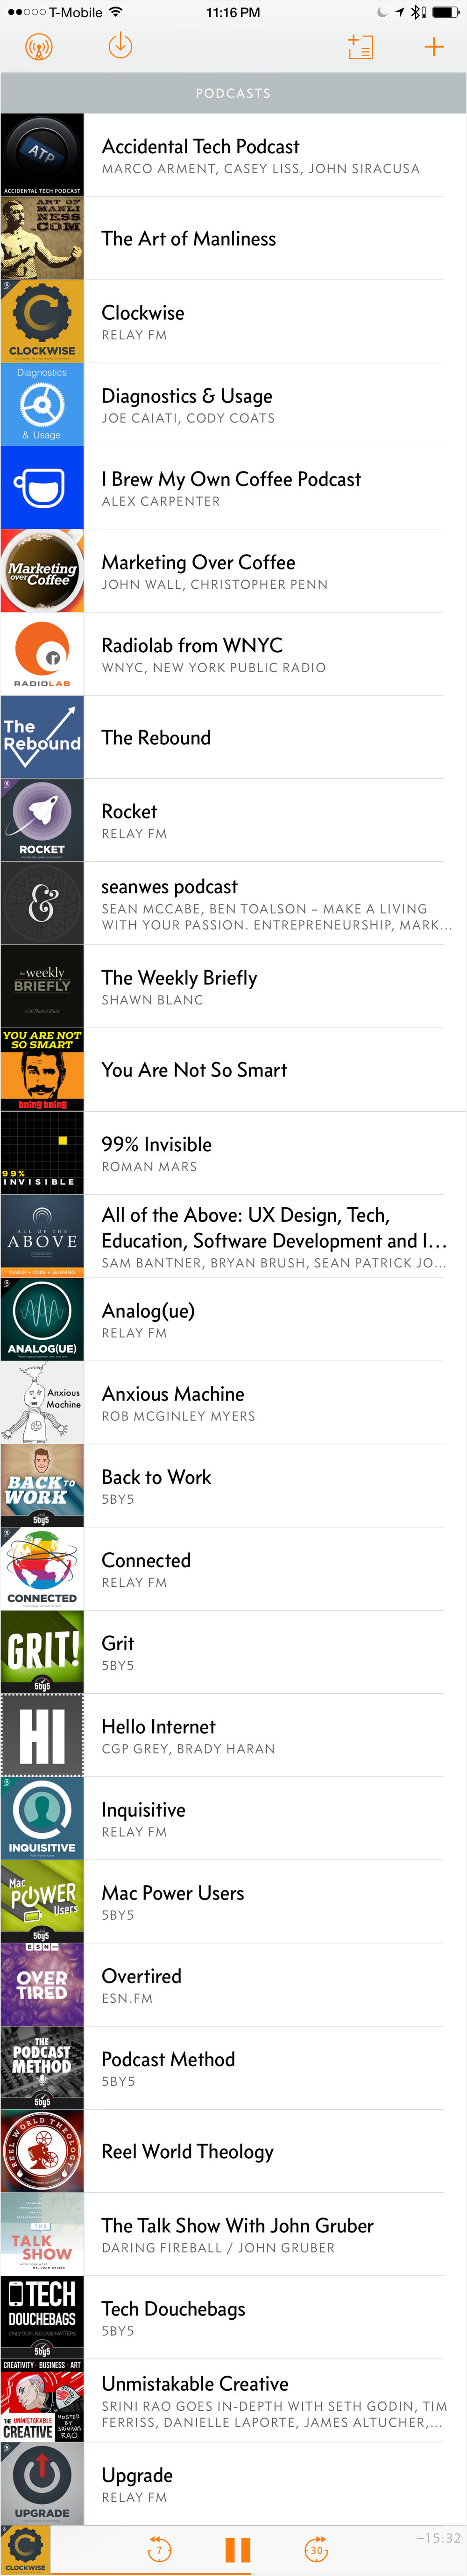 Screenshot of Overcast podcast subscriptions